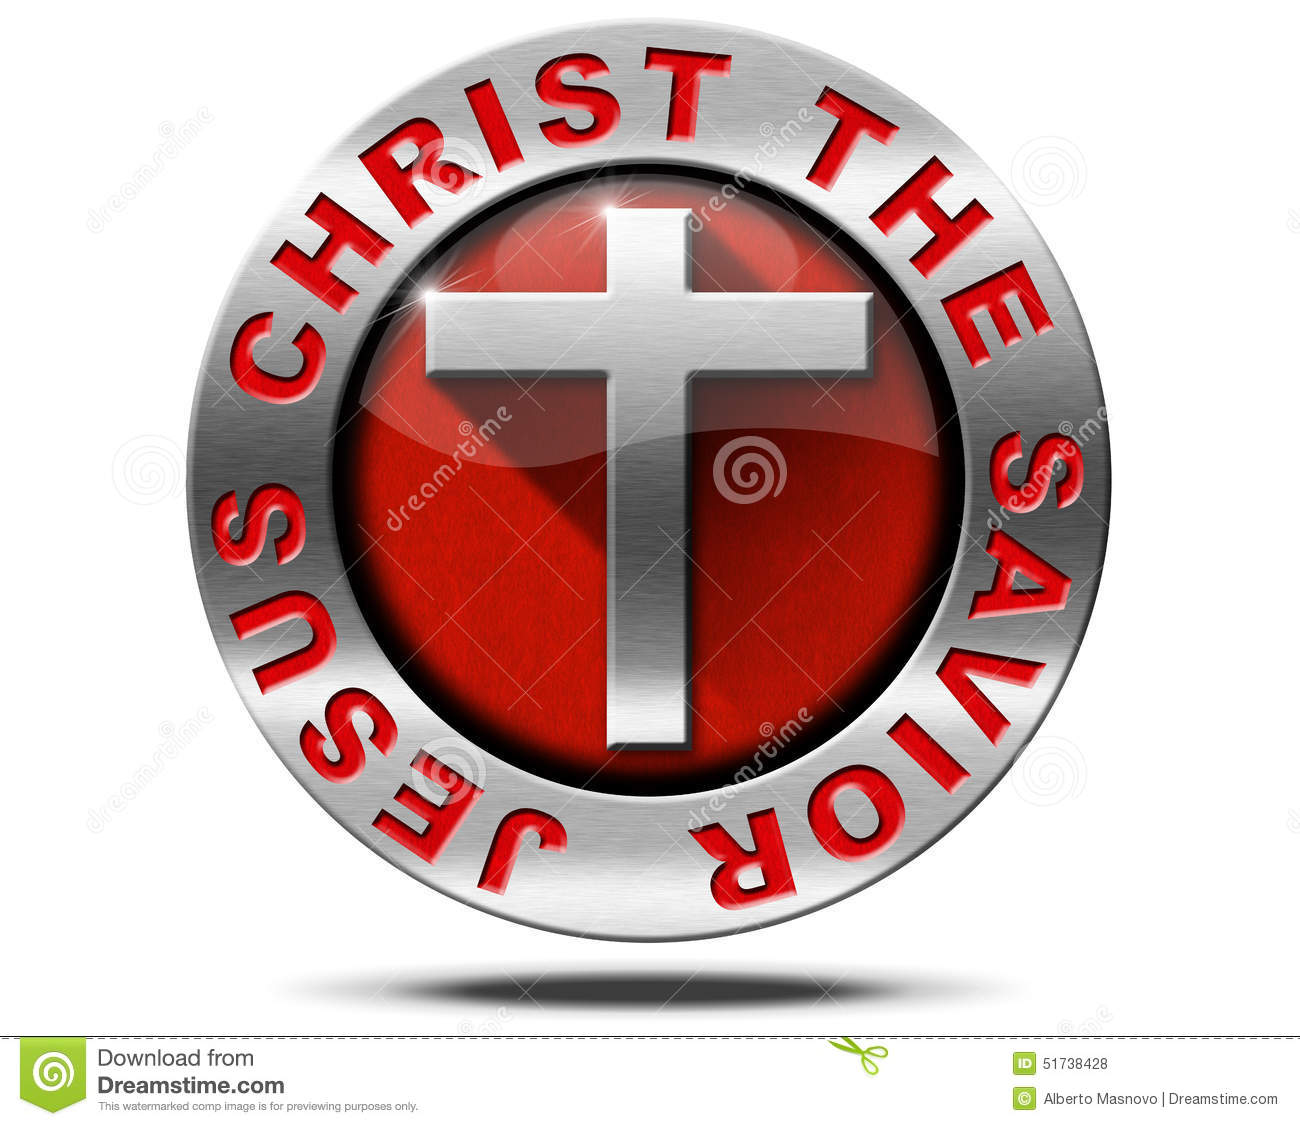 Jesus christ the savior metal symbol stock illustration jesus christ the savior metal symbol biocorpaavc Image collections